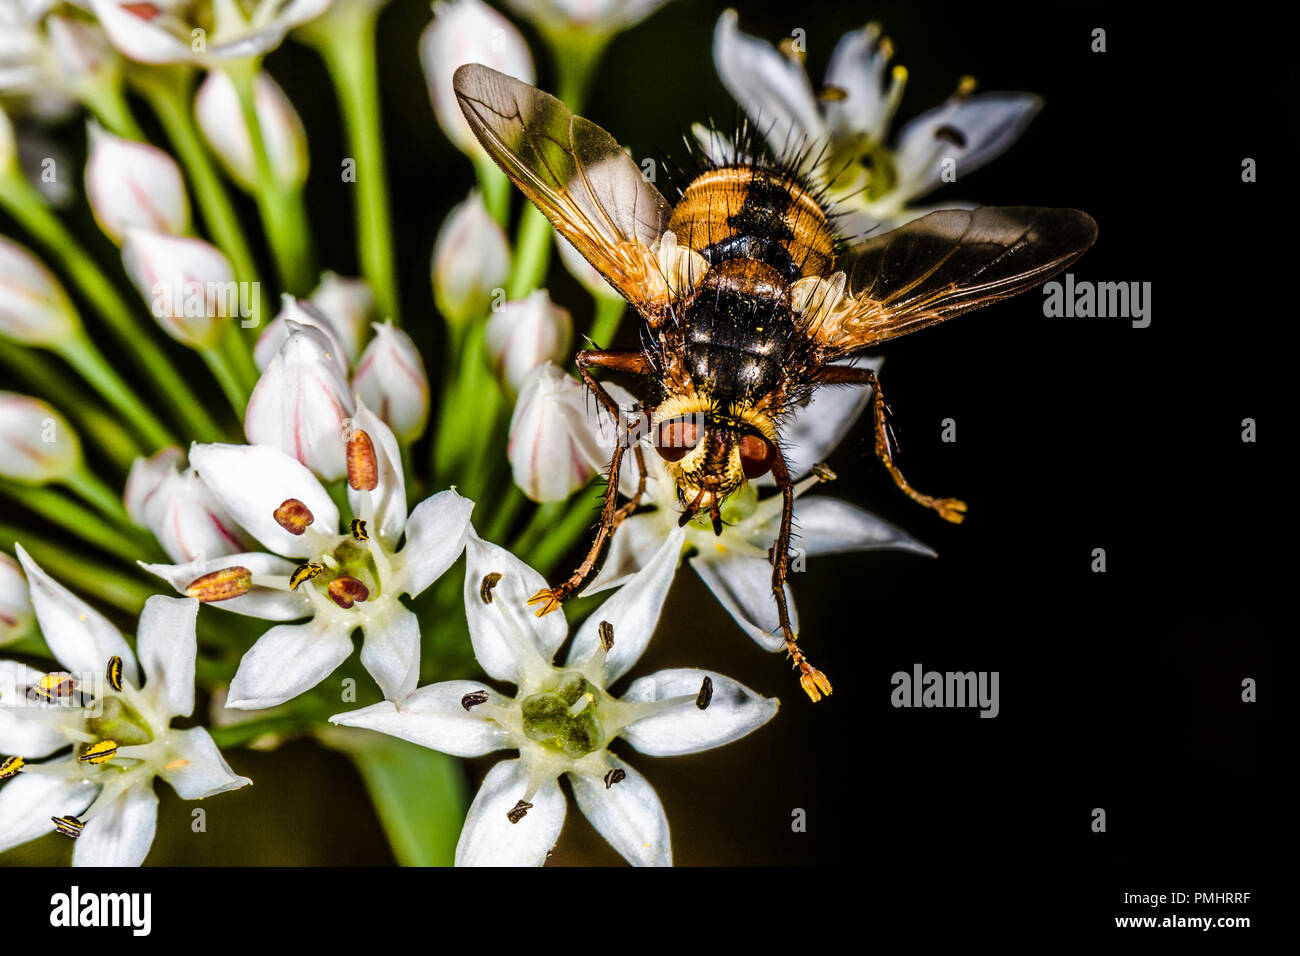 fly on white flower, background macro photo with place for text - Stock Image